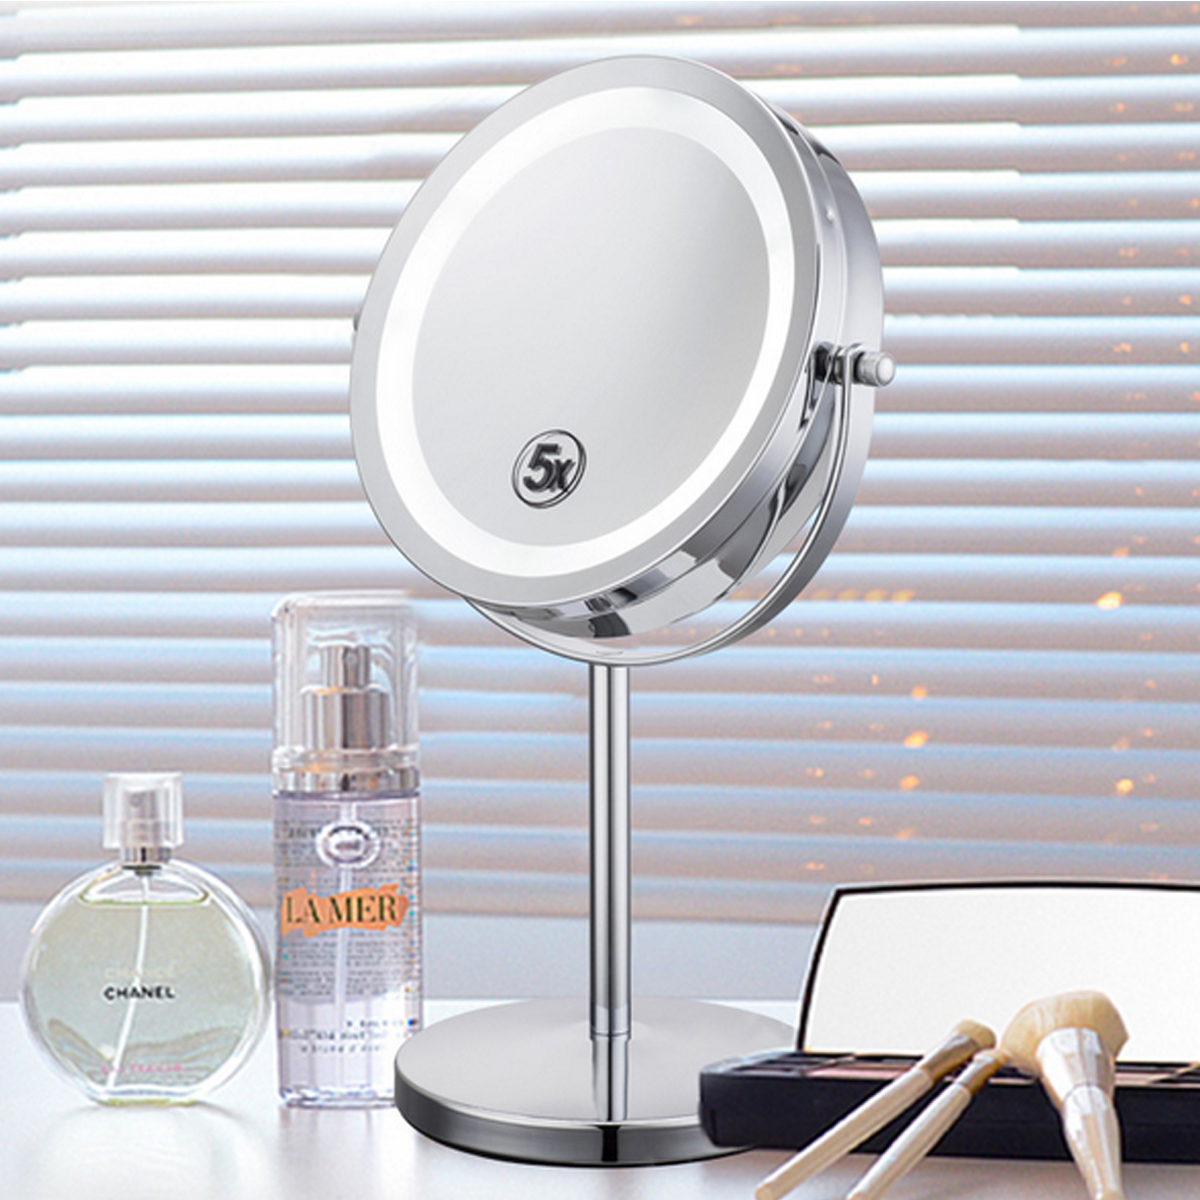 18 LED Lights Makeup Vanity Mirror 5x Magnification Tabletop Cosmetic Mirror by